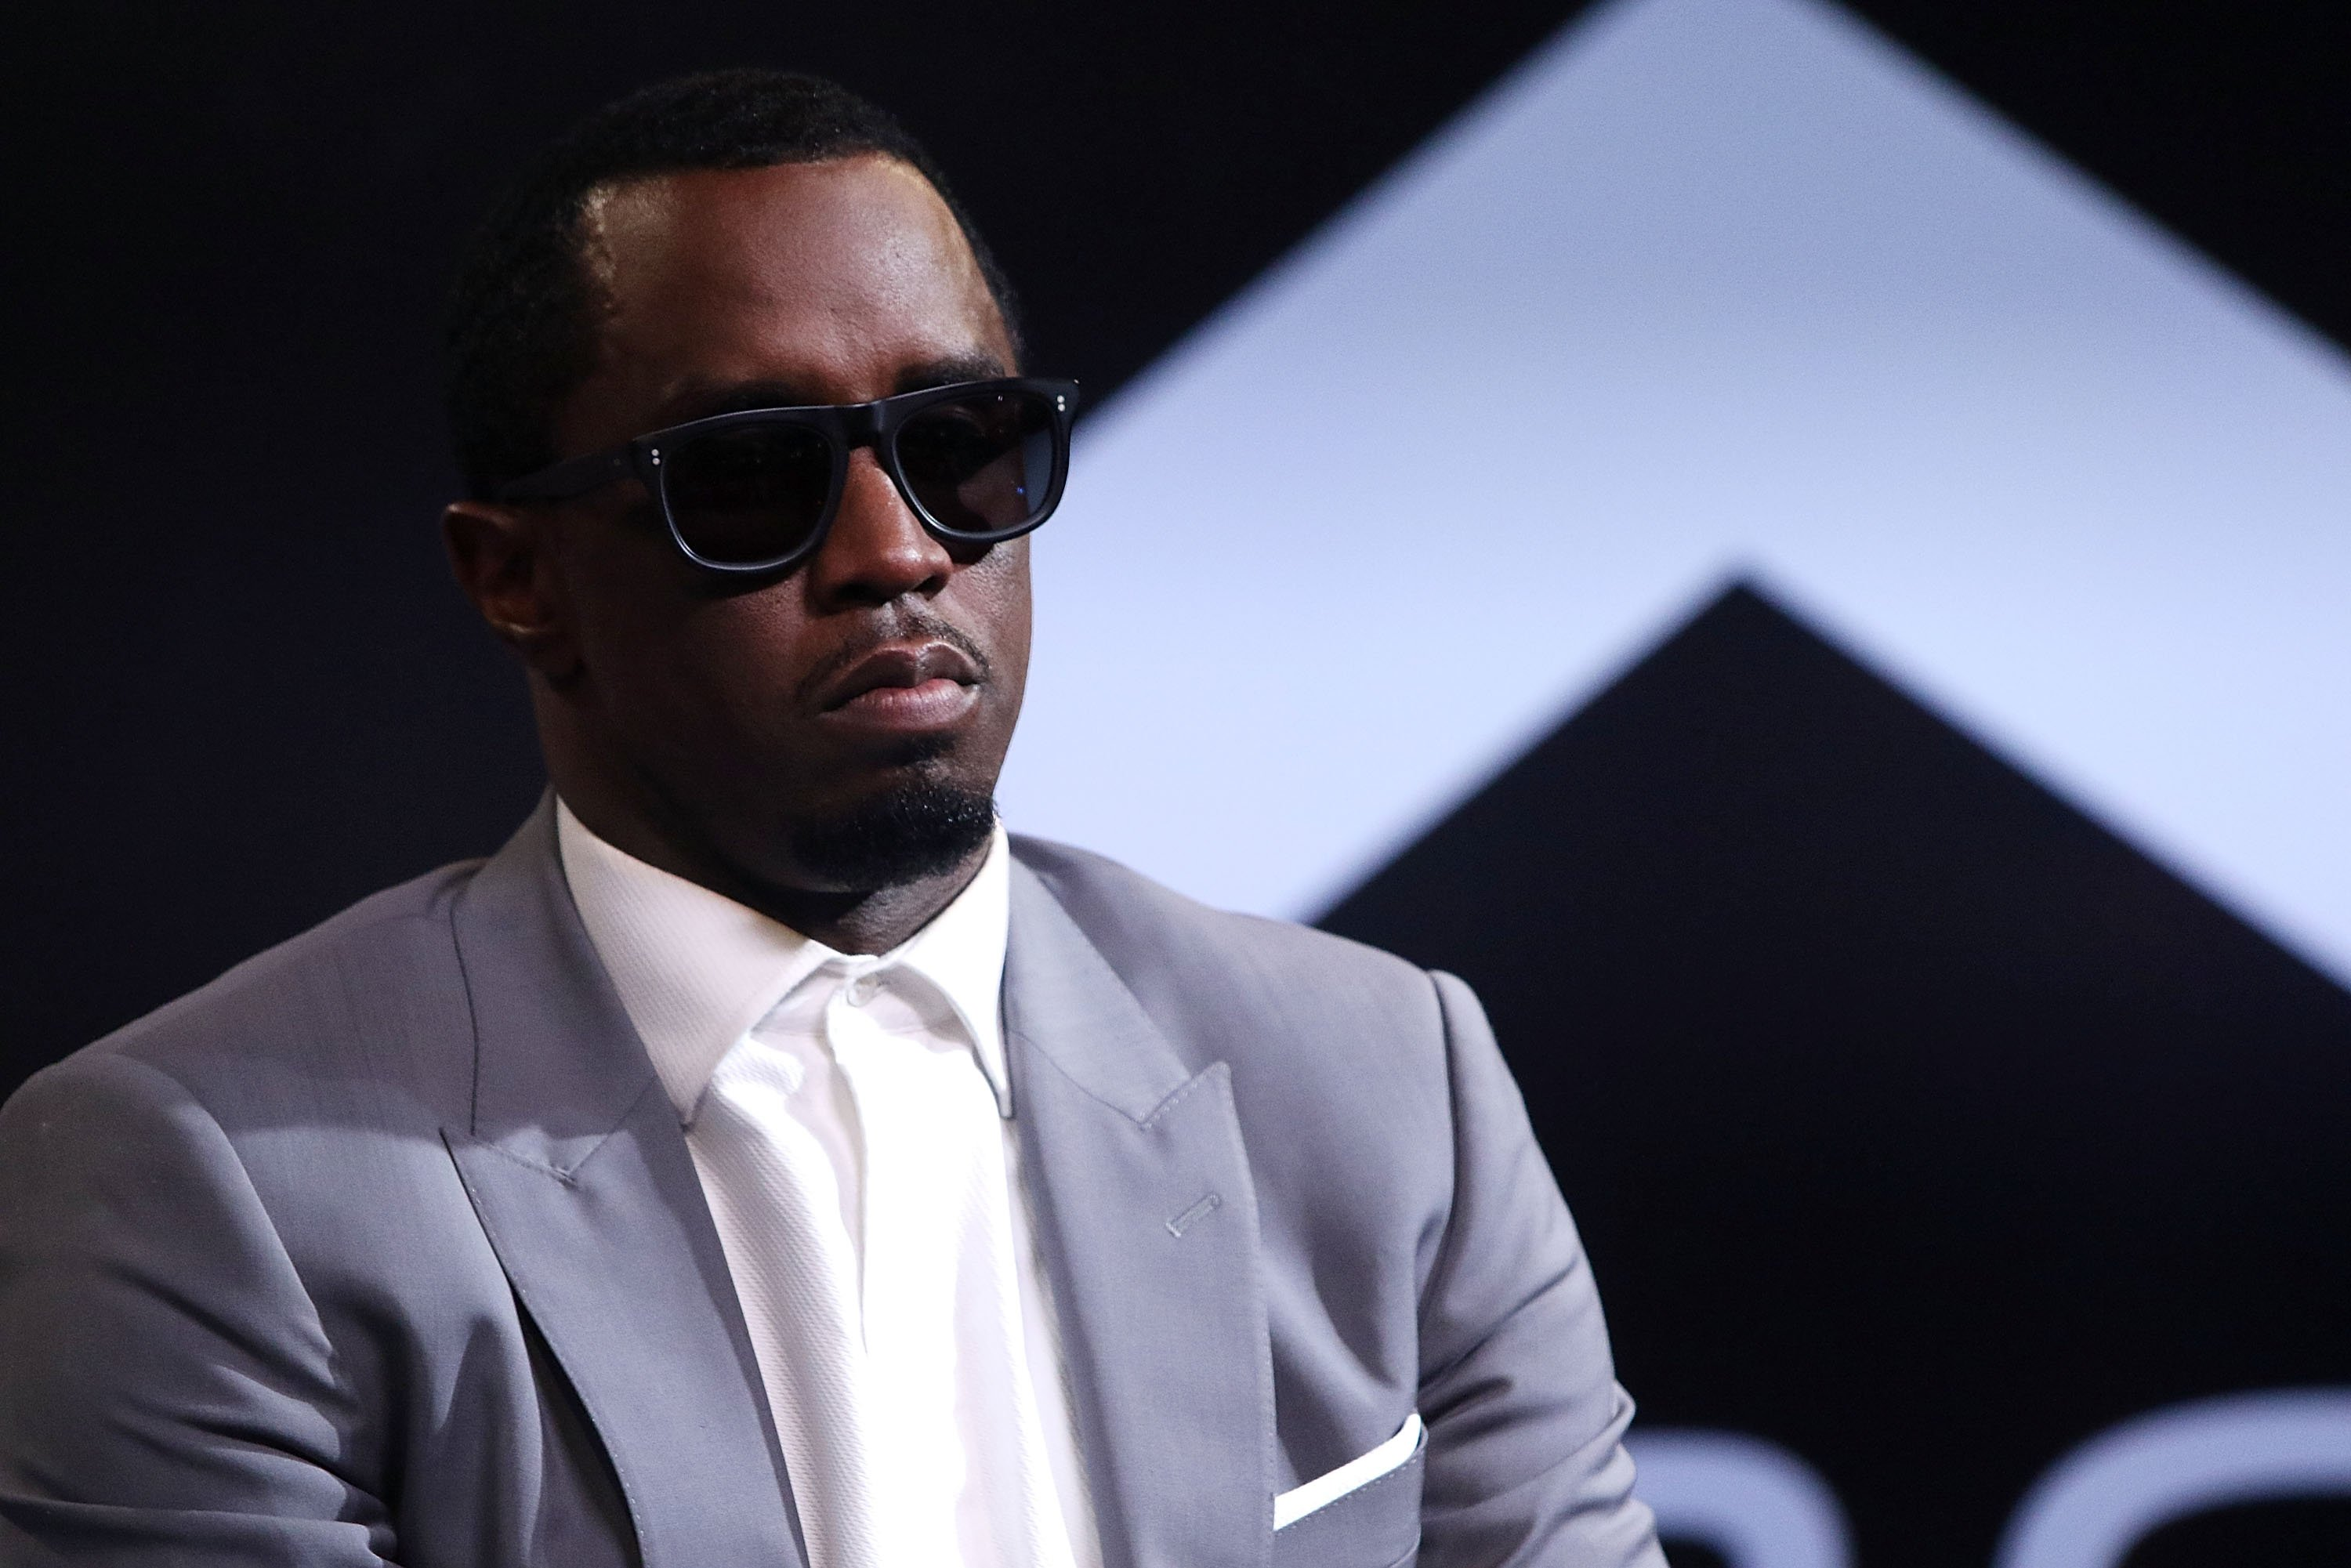 Sean John Combs aka Diddy in 2016. | Photo: Getty Images